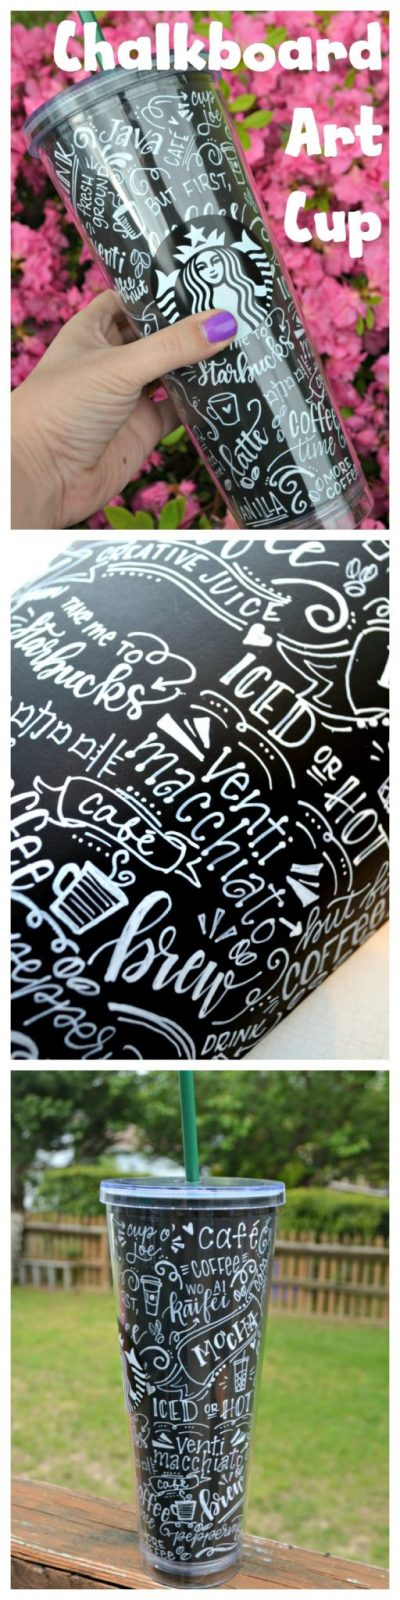 Chalkboard Art Coffee Cup